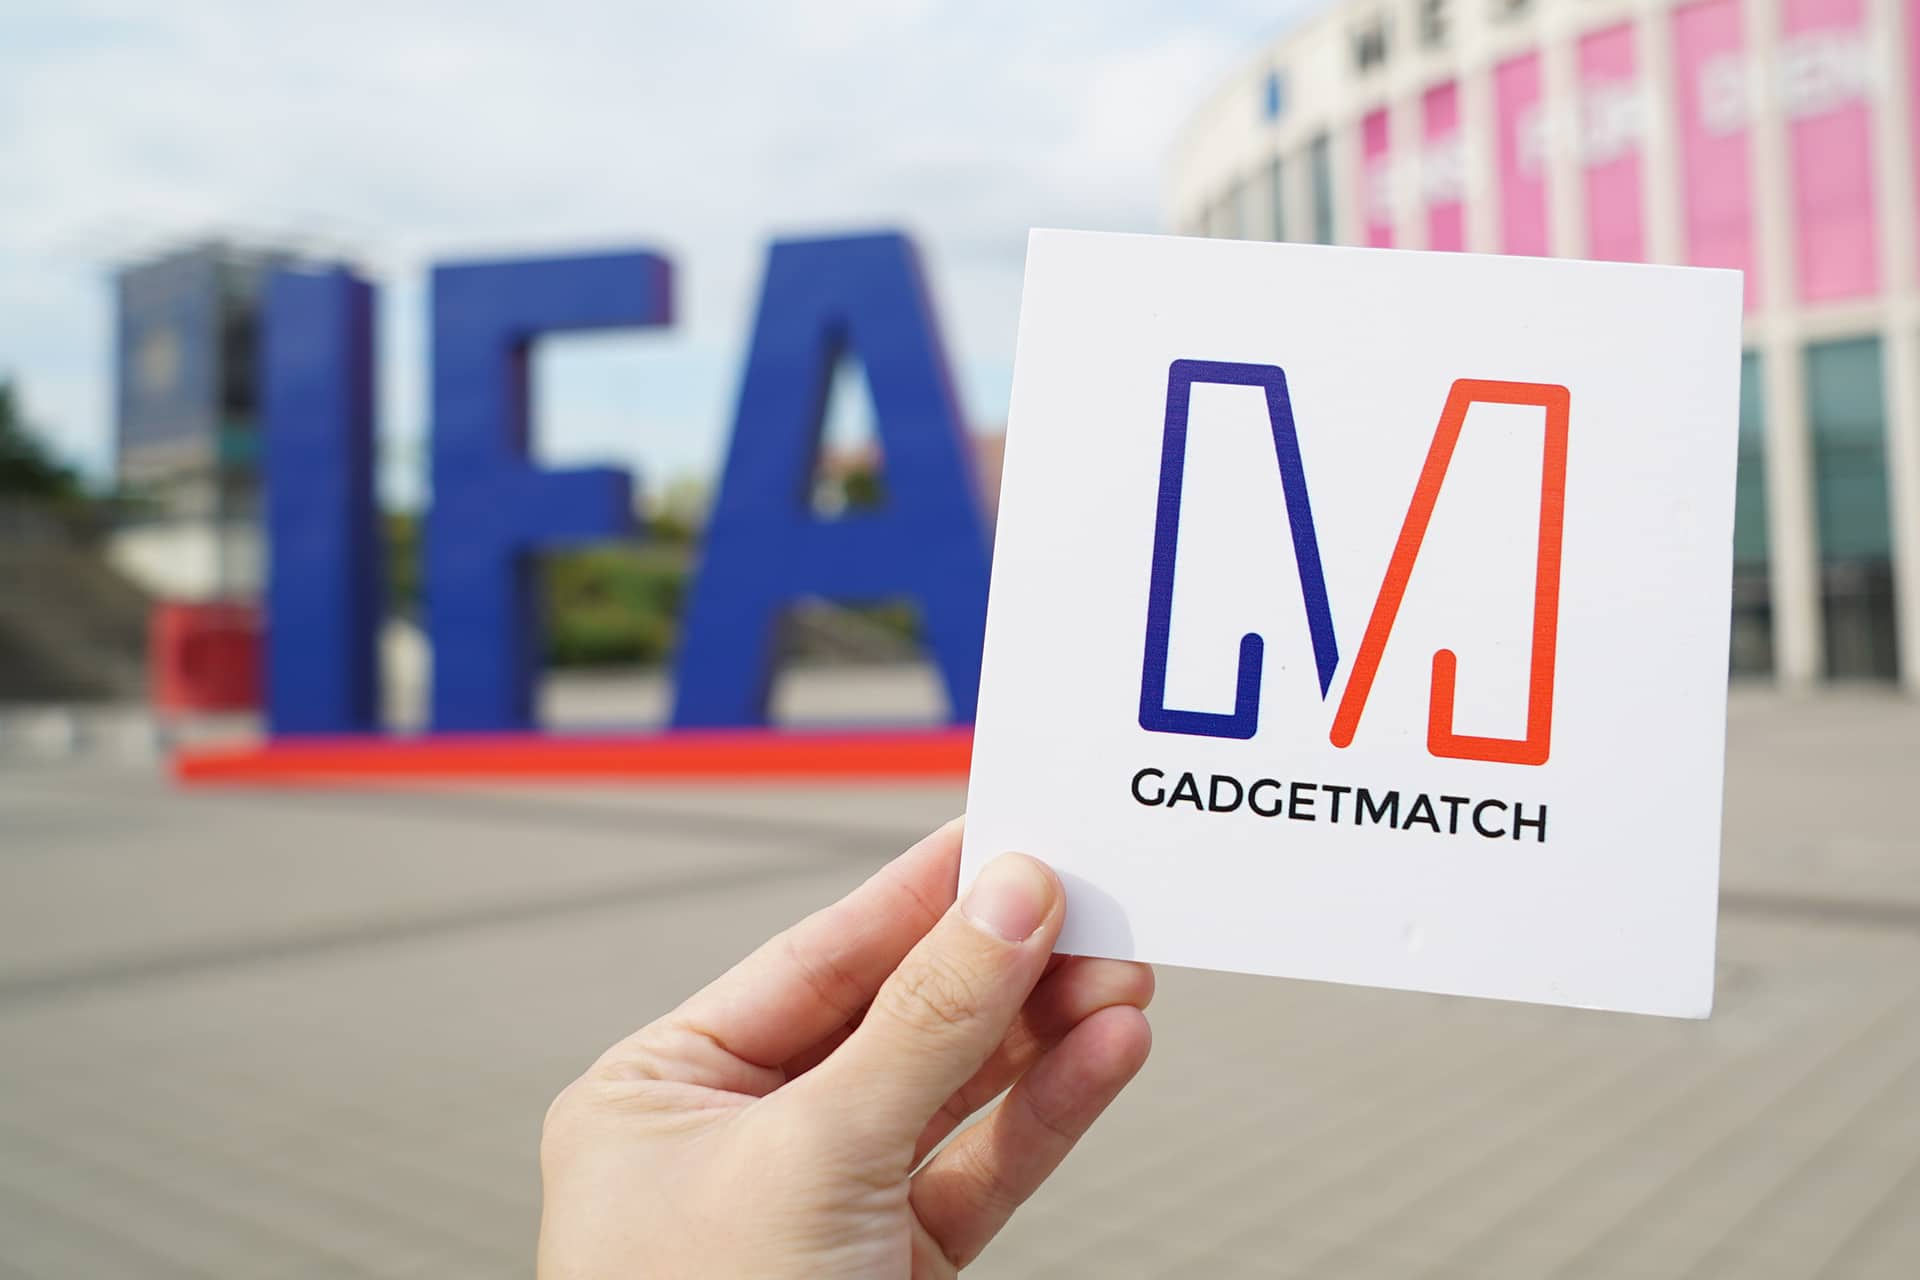 gadgetmatch-ifa-2015-slider-background-05